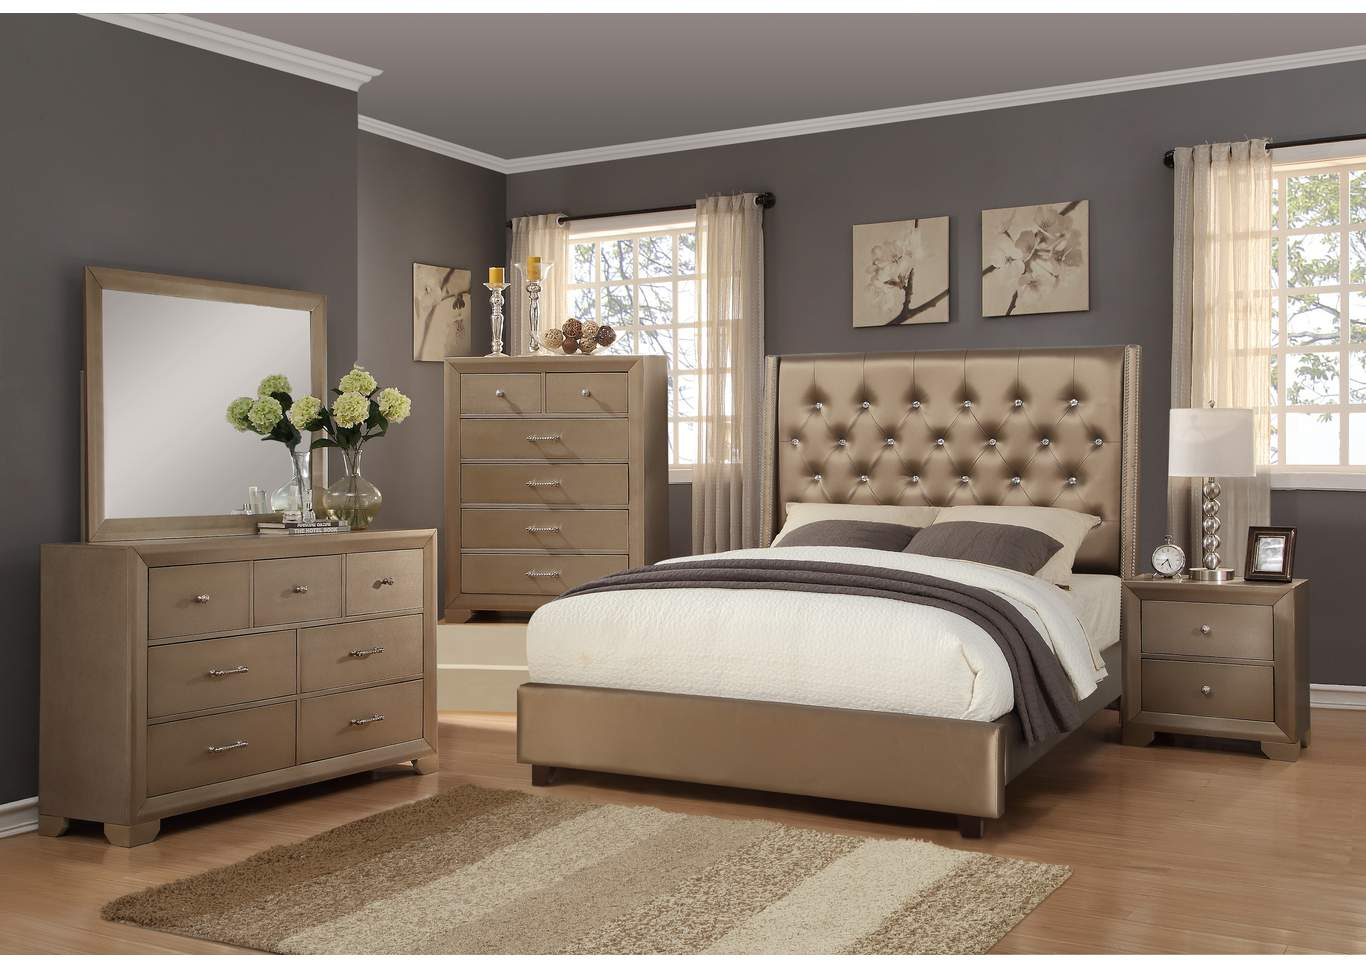 Beau Mikeu0027s Furniture   Alexandria, LA Fontaine Bronze Upholstered Platform King  Bed W/Dresser, Mirror, Nightstand And Drawer Chest